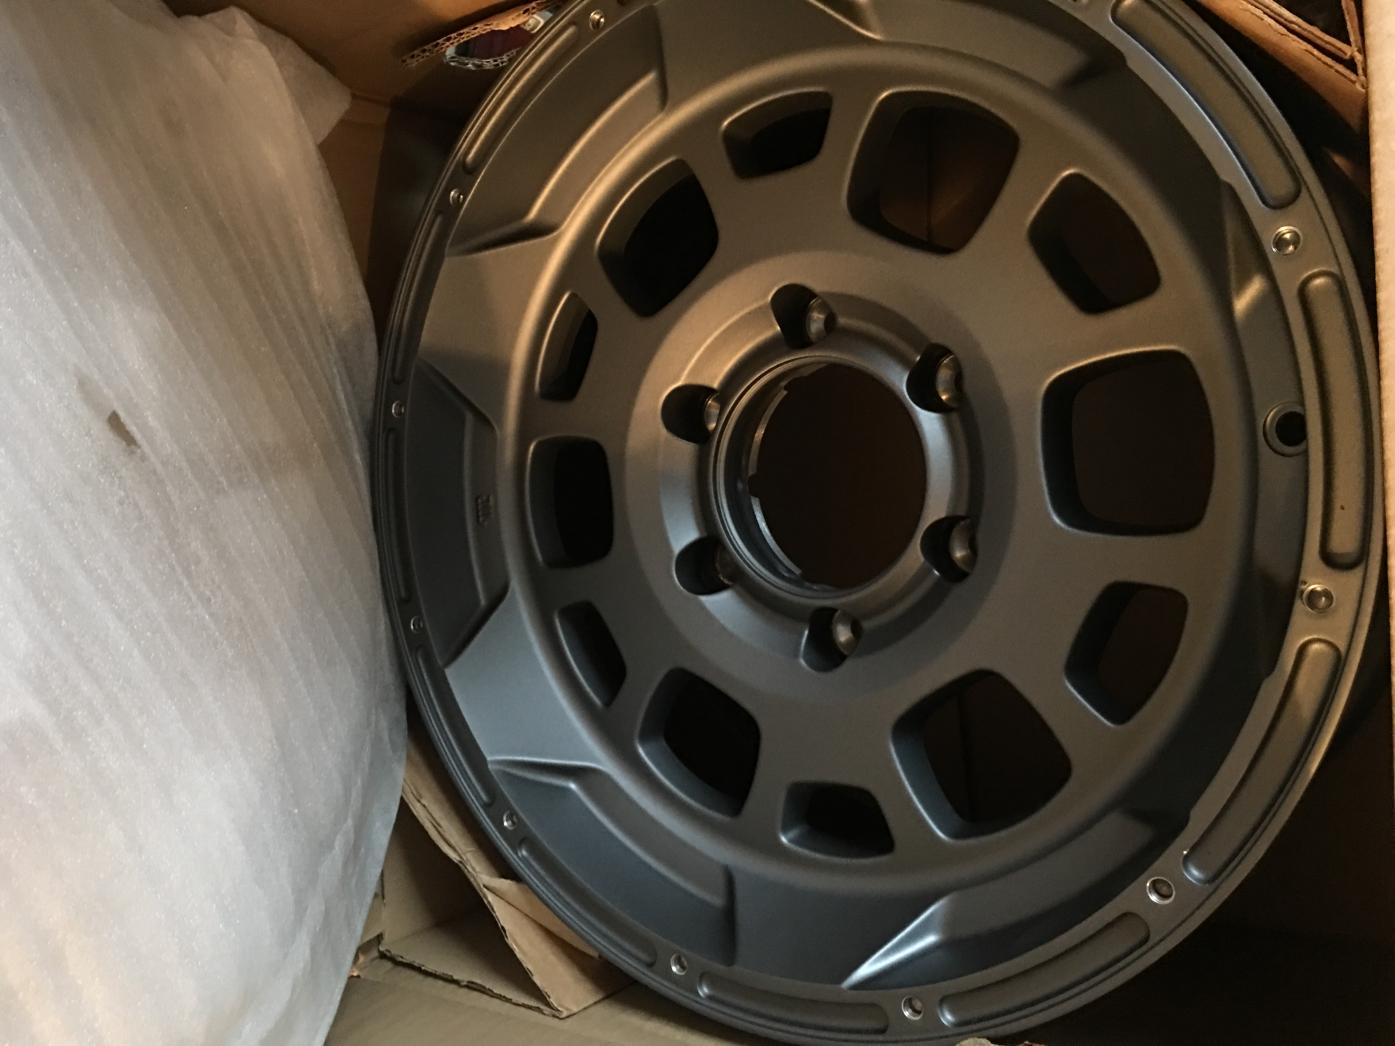 Set of New TRD Beadlock Style Wheels - 0-img_8054-jpg